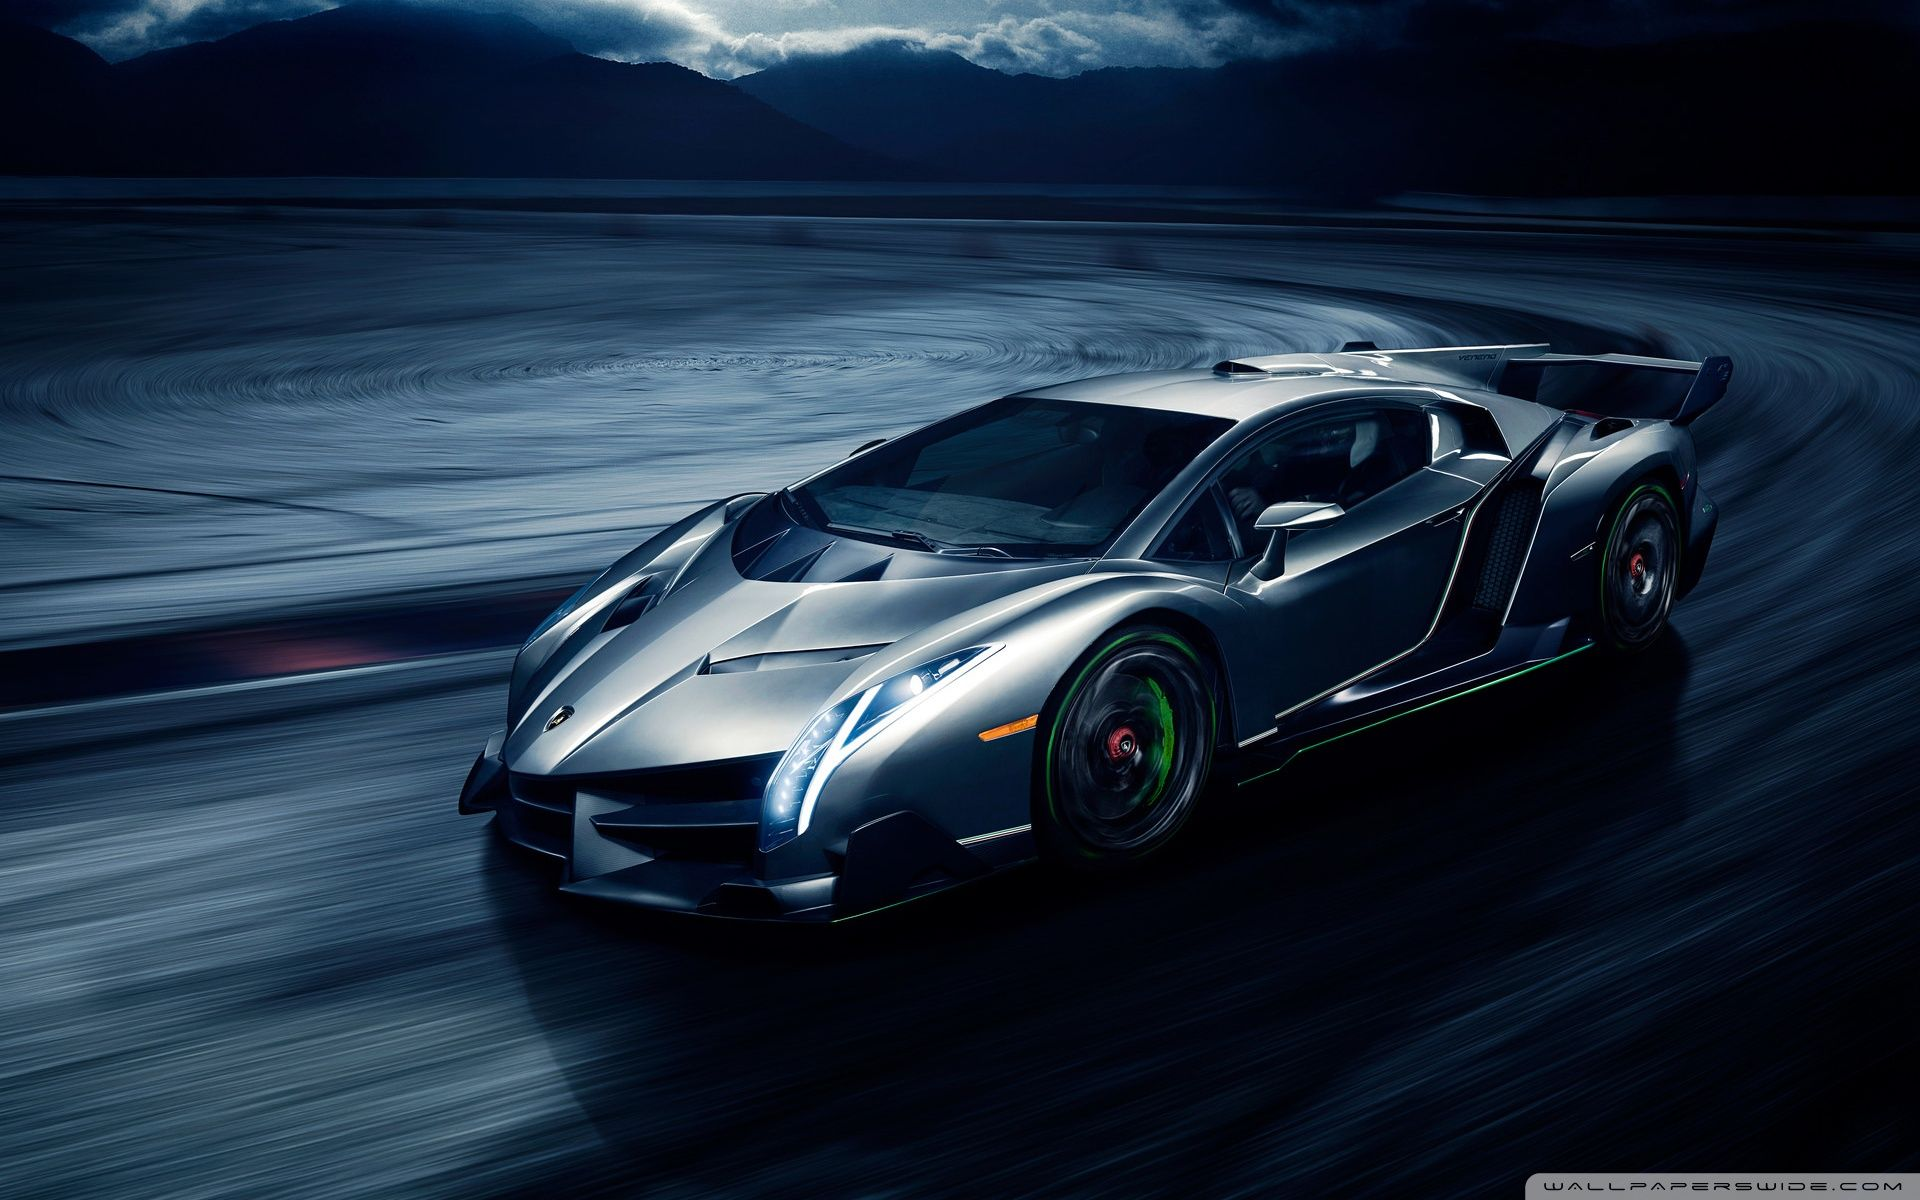 Vorsteiner Zaragoza Lamborghini Aventador K Wallpaper Hd Car Lamborghini Hd Wallpapers Wallpapers